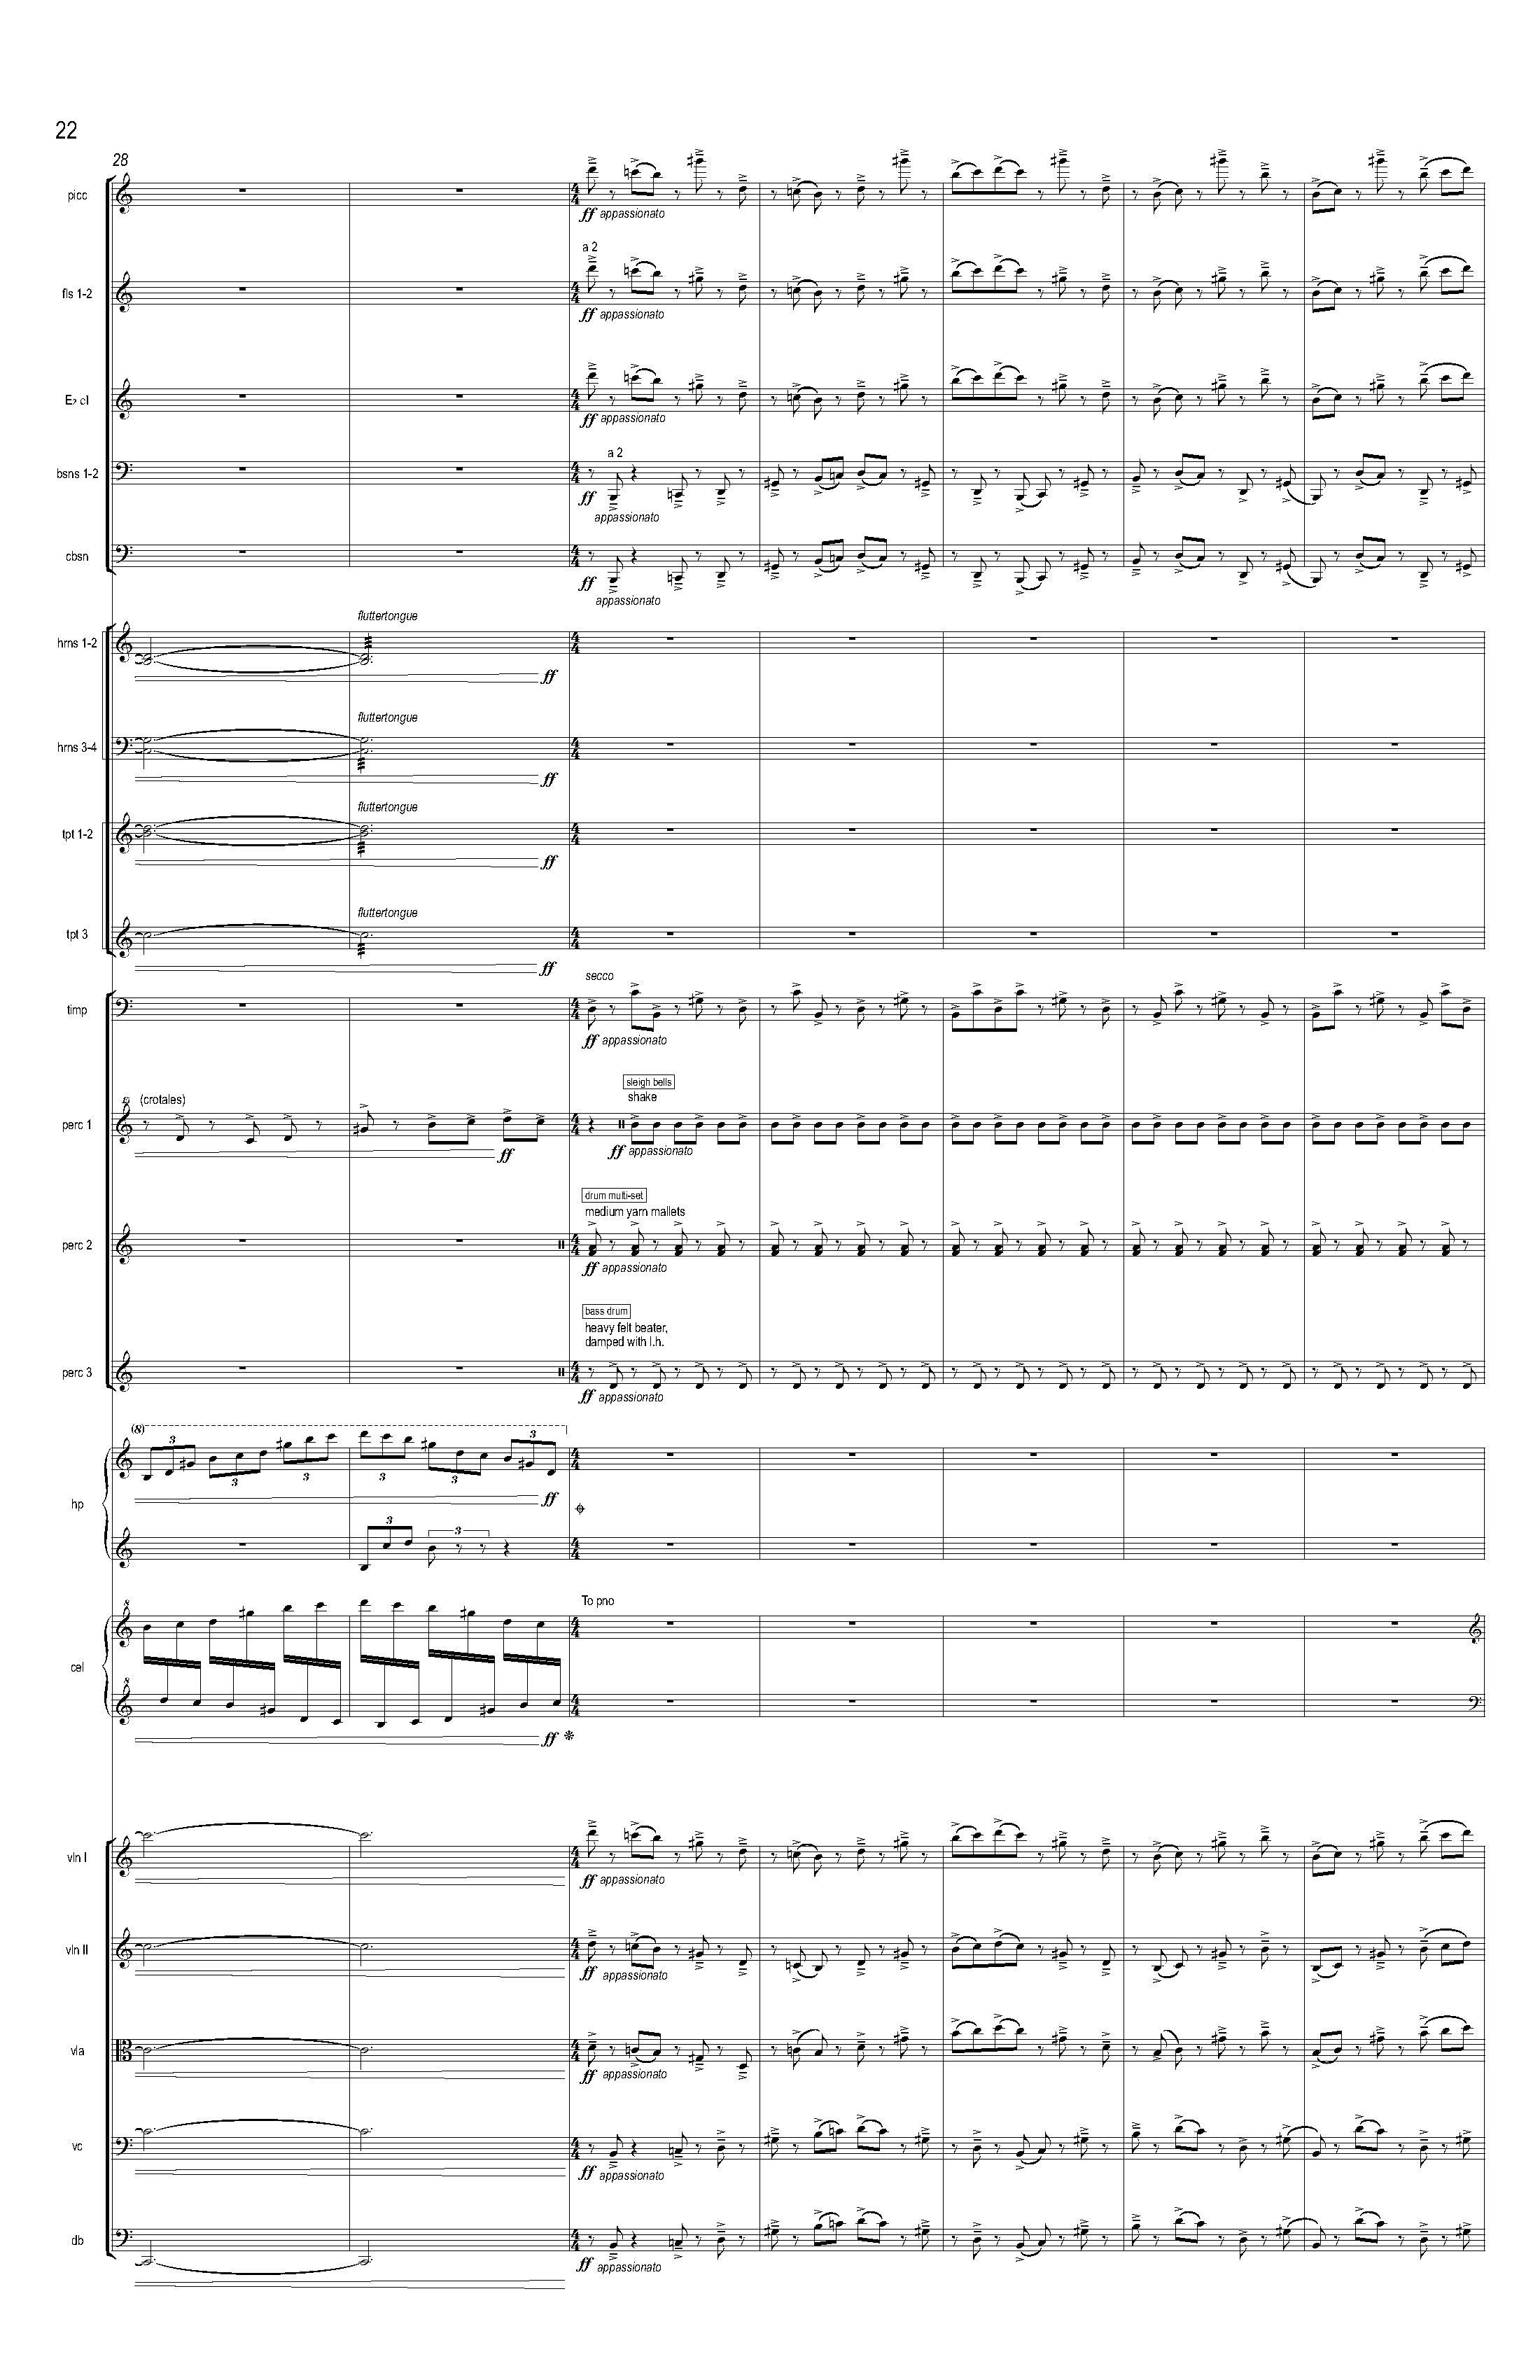 Ciach_Collective Uncommon REVISED_Full Score (Feb 2017)_Seite_28.jpg